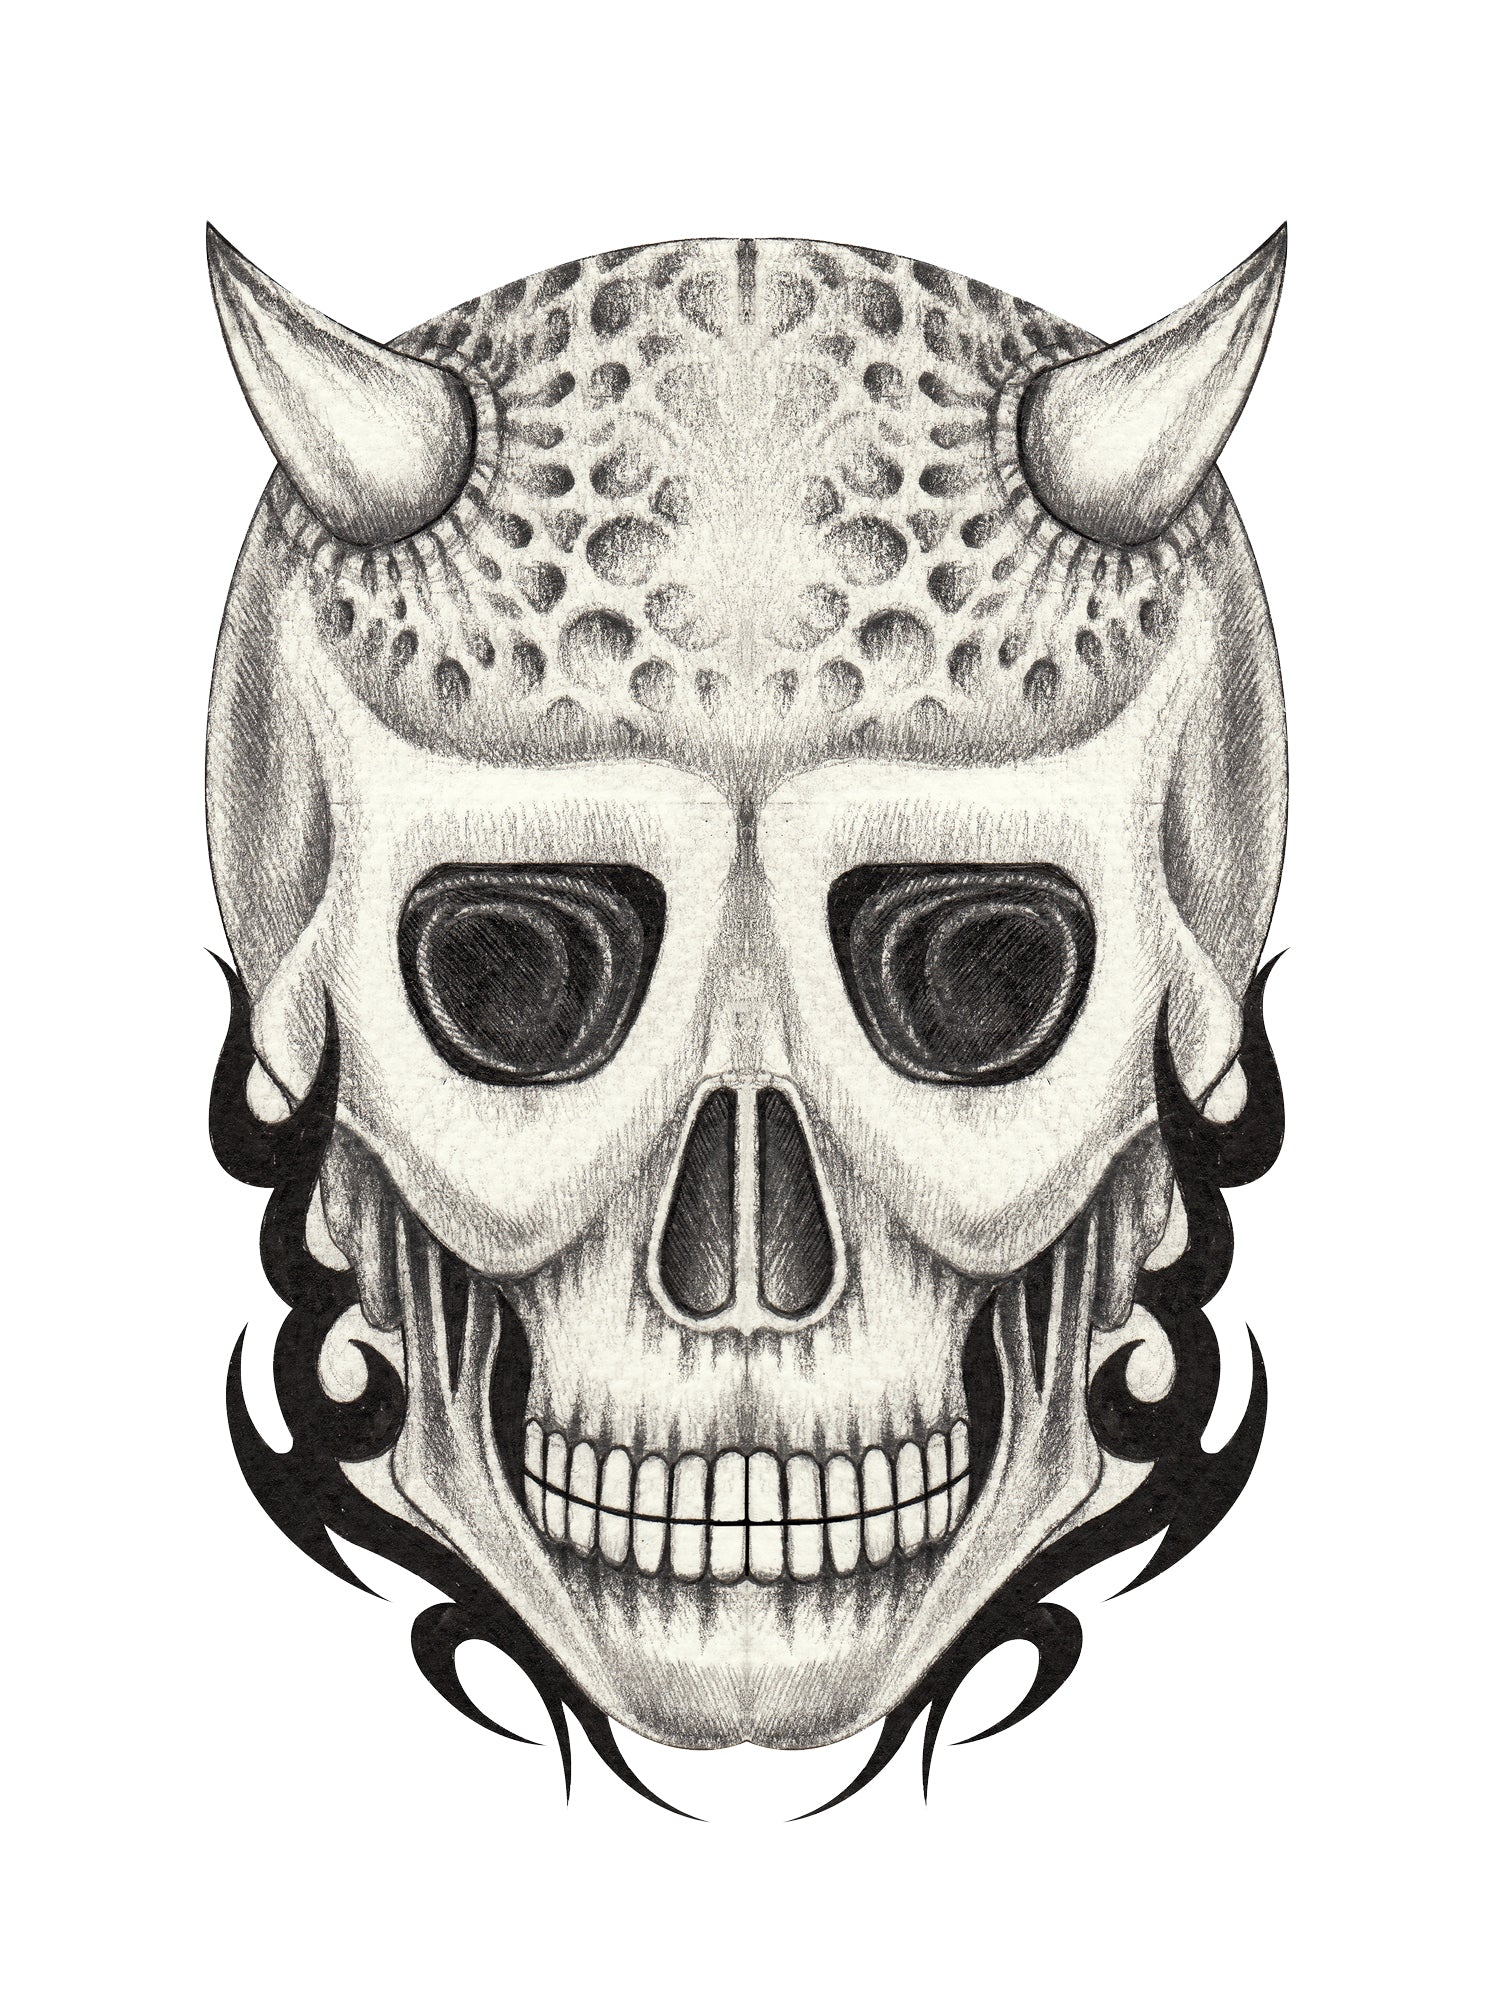 Pencil Sketch Devil Skull with Horns Vinyl Decal Sticker